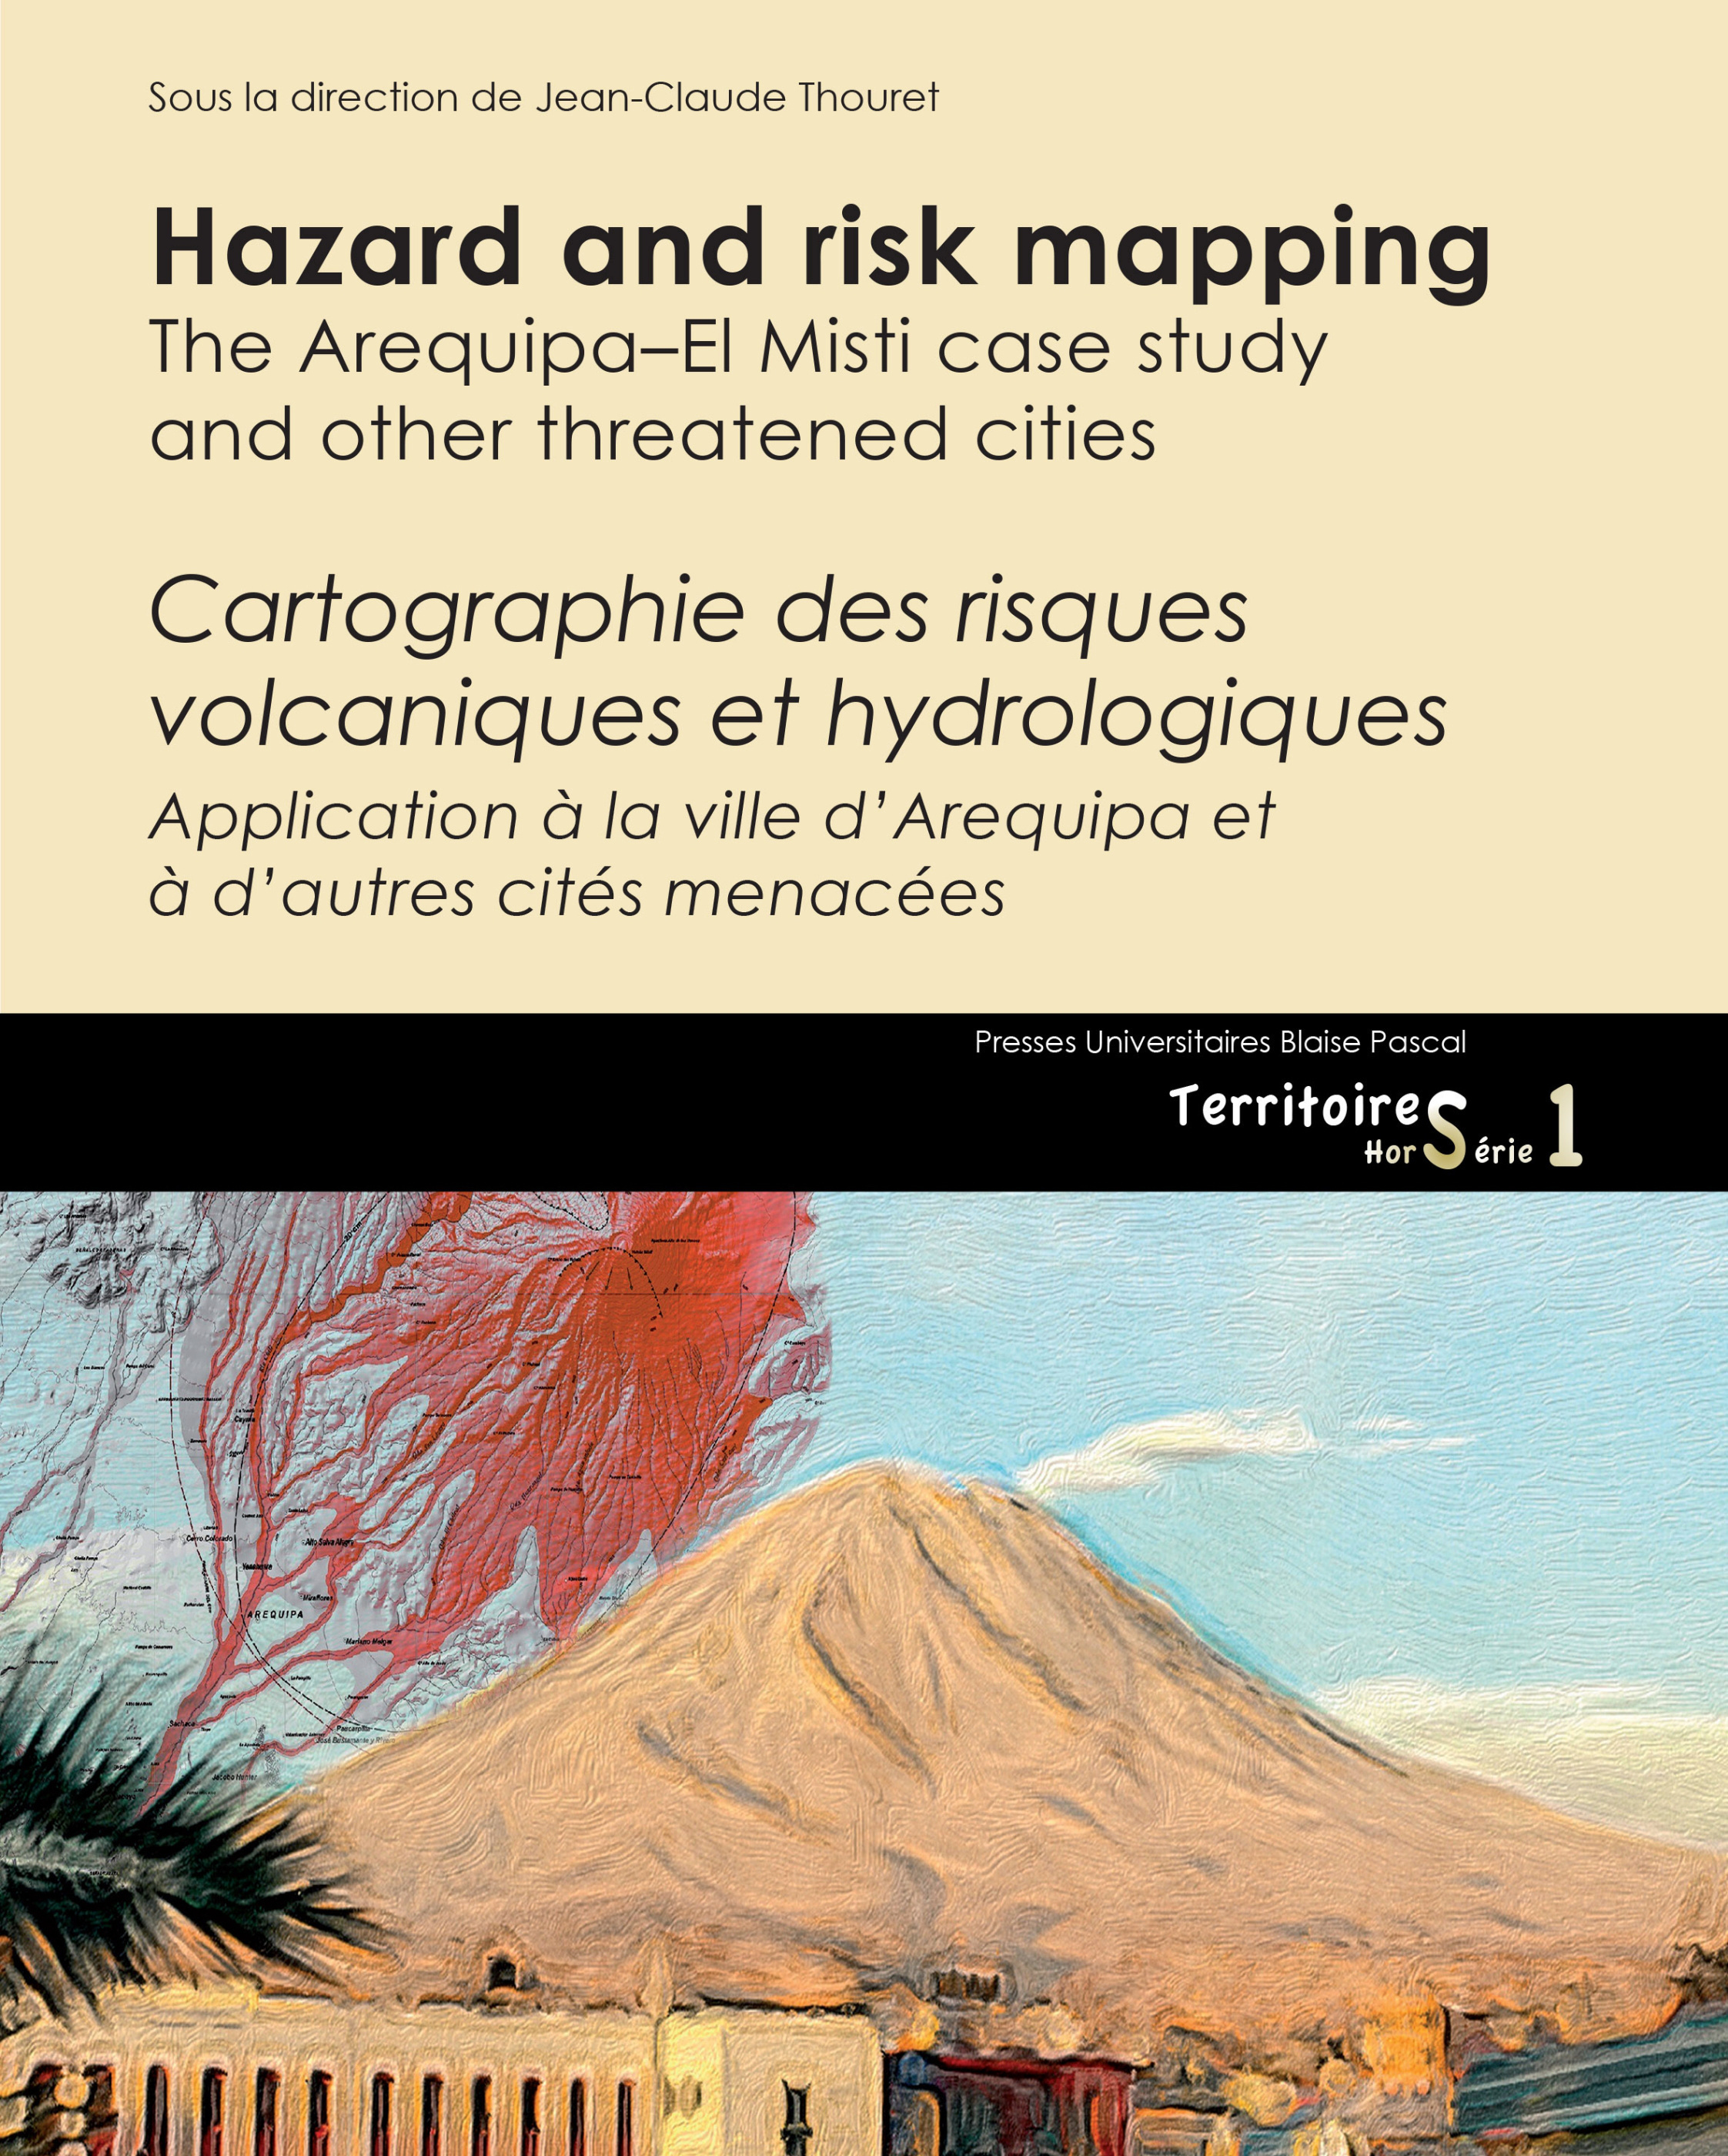 HAZARD AND RISK MAPPING. THE AREQUIPA-EL MISTI CASE STUDY AND OTHER T